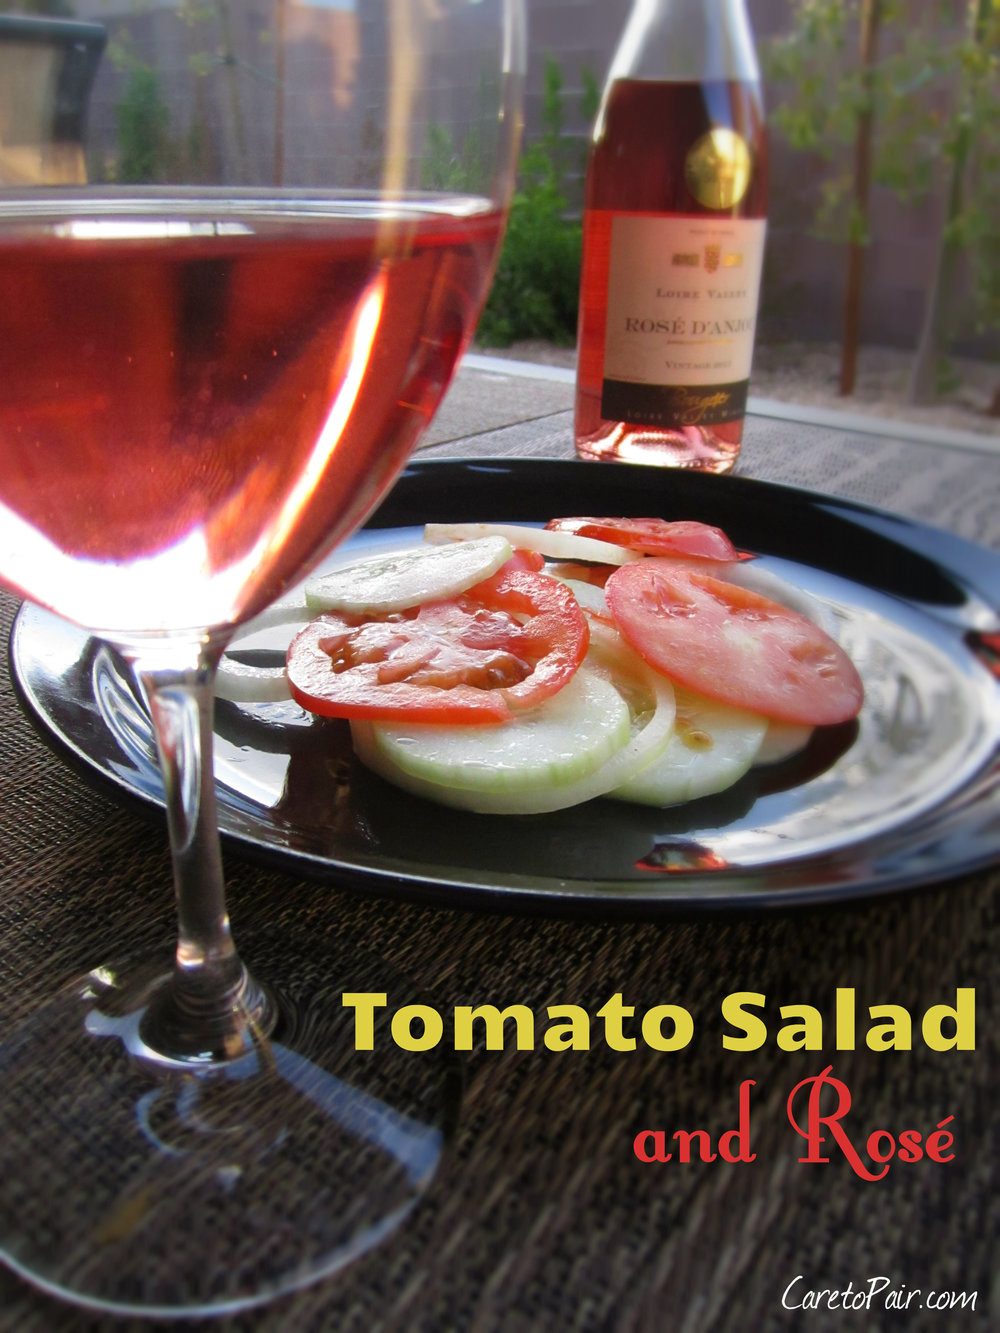 Tomato Salad and Rose